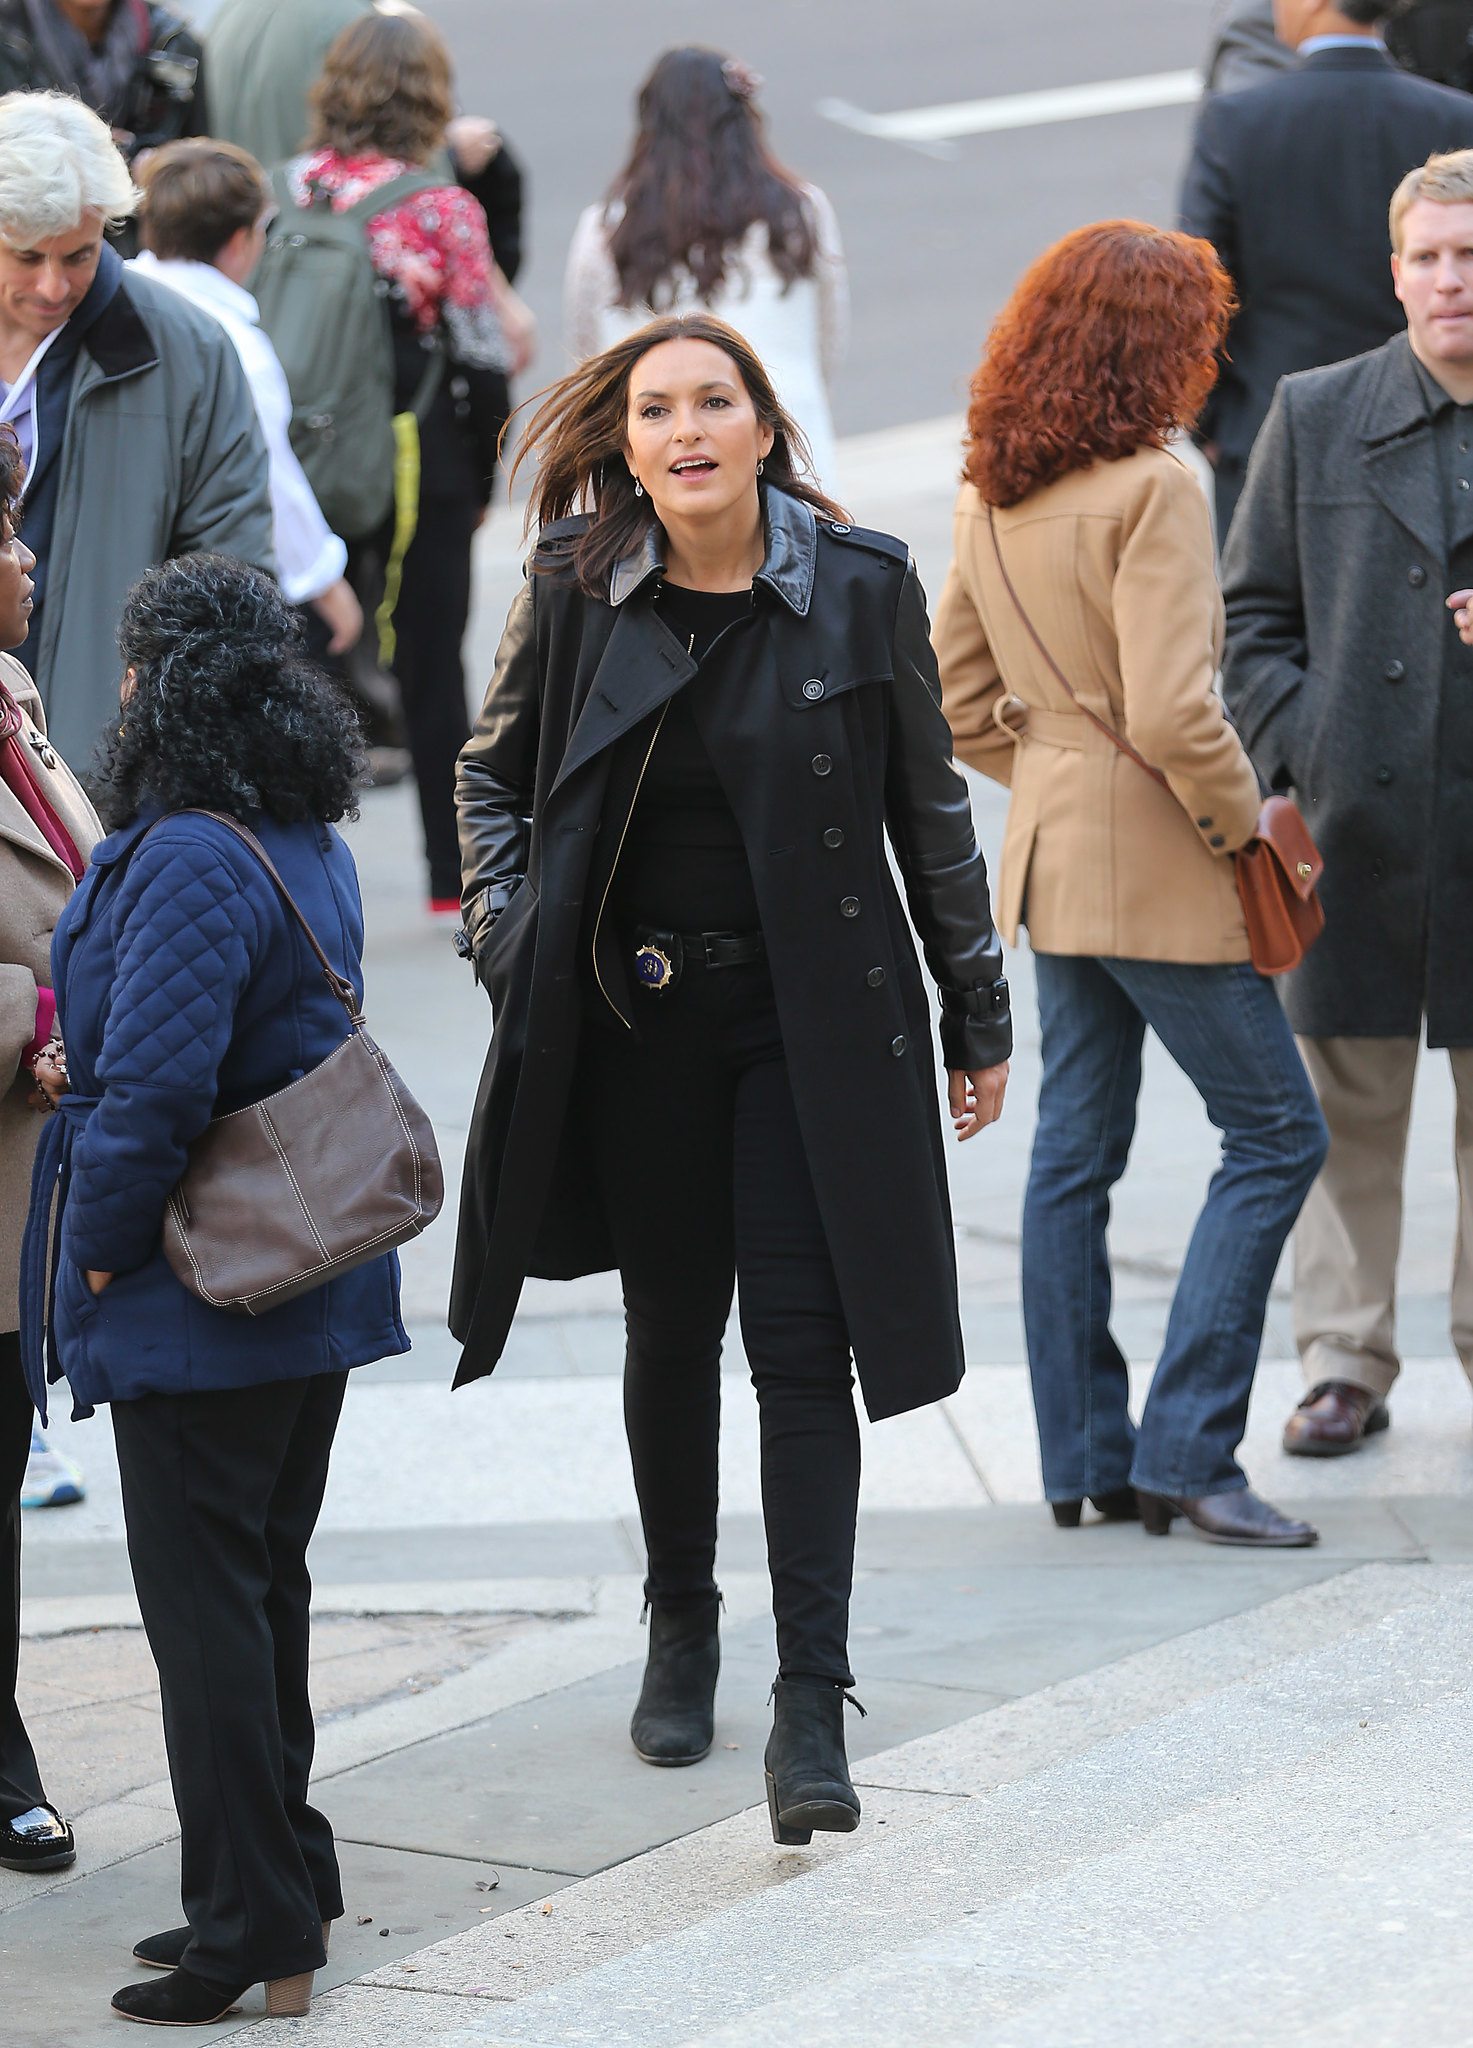 Back to post mariska hargitay at law and order set in ny - Pictured Mariska Hargitay Ref Spl1157717 211015 Exclusive Picture By Lawrence Schwartzwald Splash News And Pictures